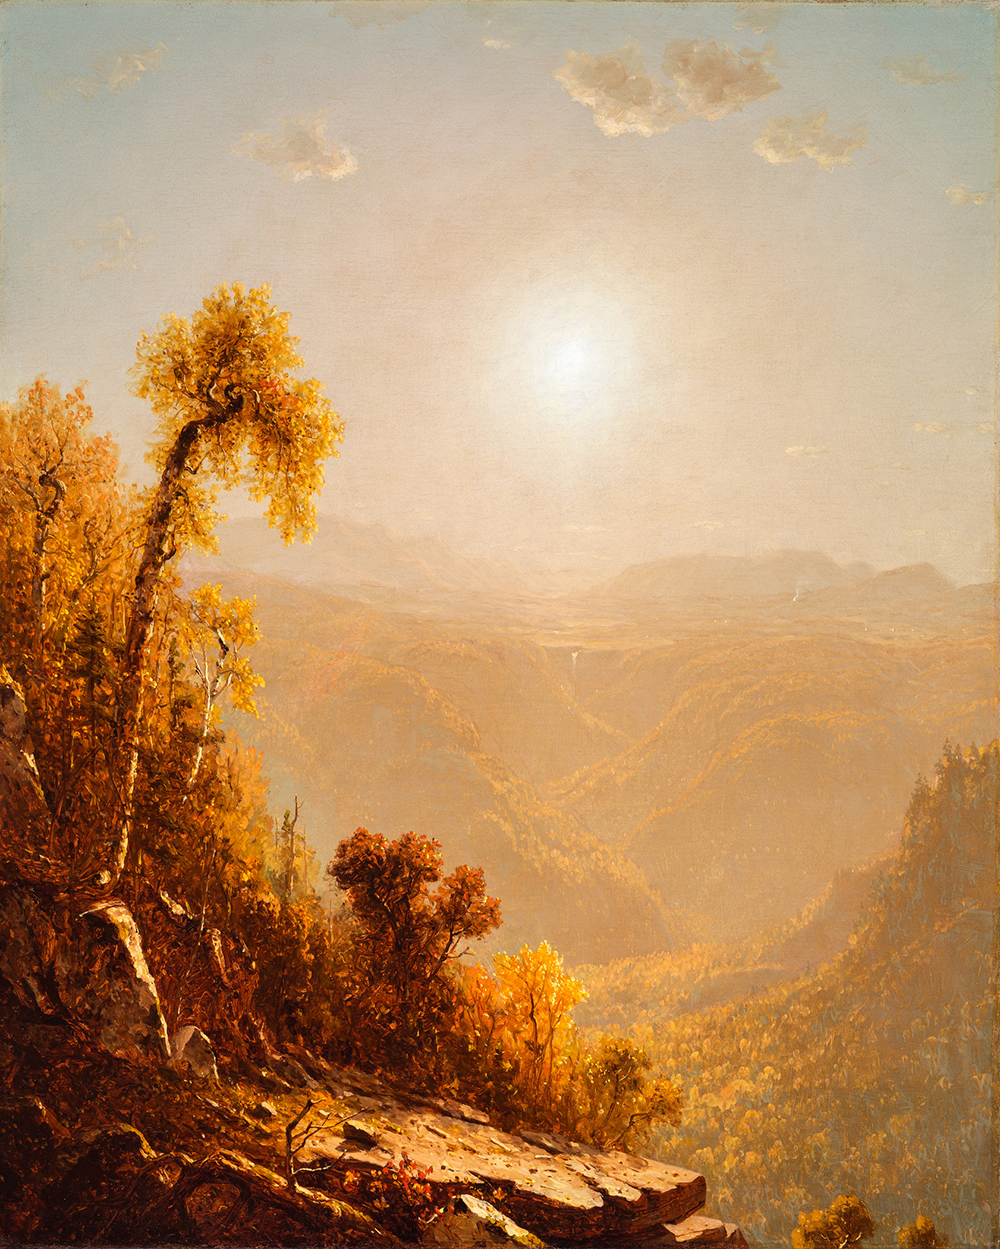 October in the Catskills, by Sanford Robinson Gifford, 1880.